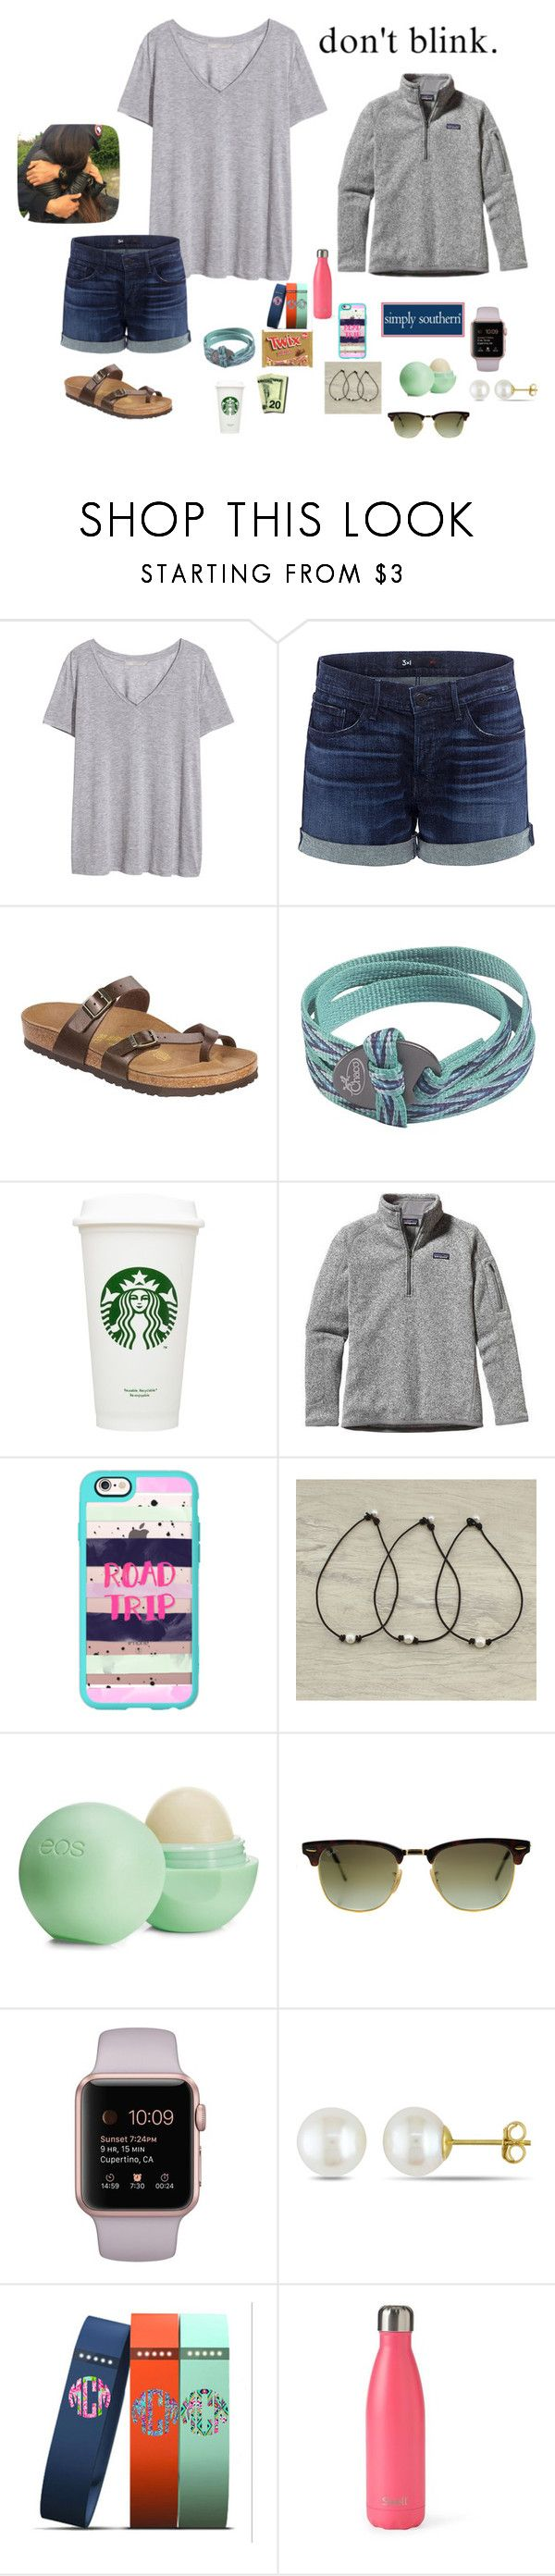 """Football game tonight! GO PIRATES 🔴⚪️🔵"" by mackenzielacy814 ❤ liked on Polyvore featuring H&M, 3x1, Birkenstock, Chaco, Patagonia, Casetify, Eos, Ray-Ban, Miadora and S'well"